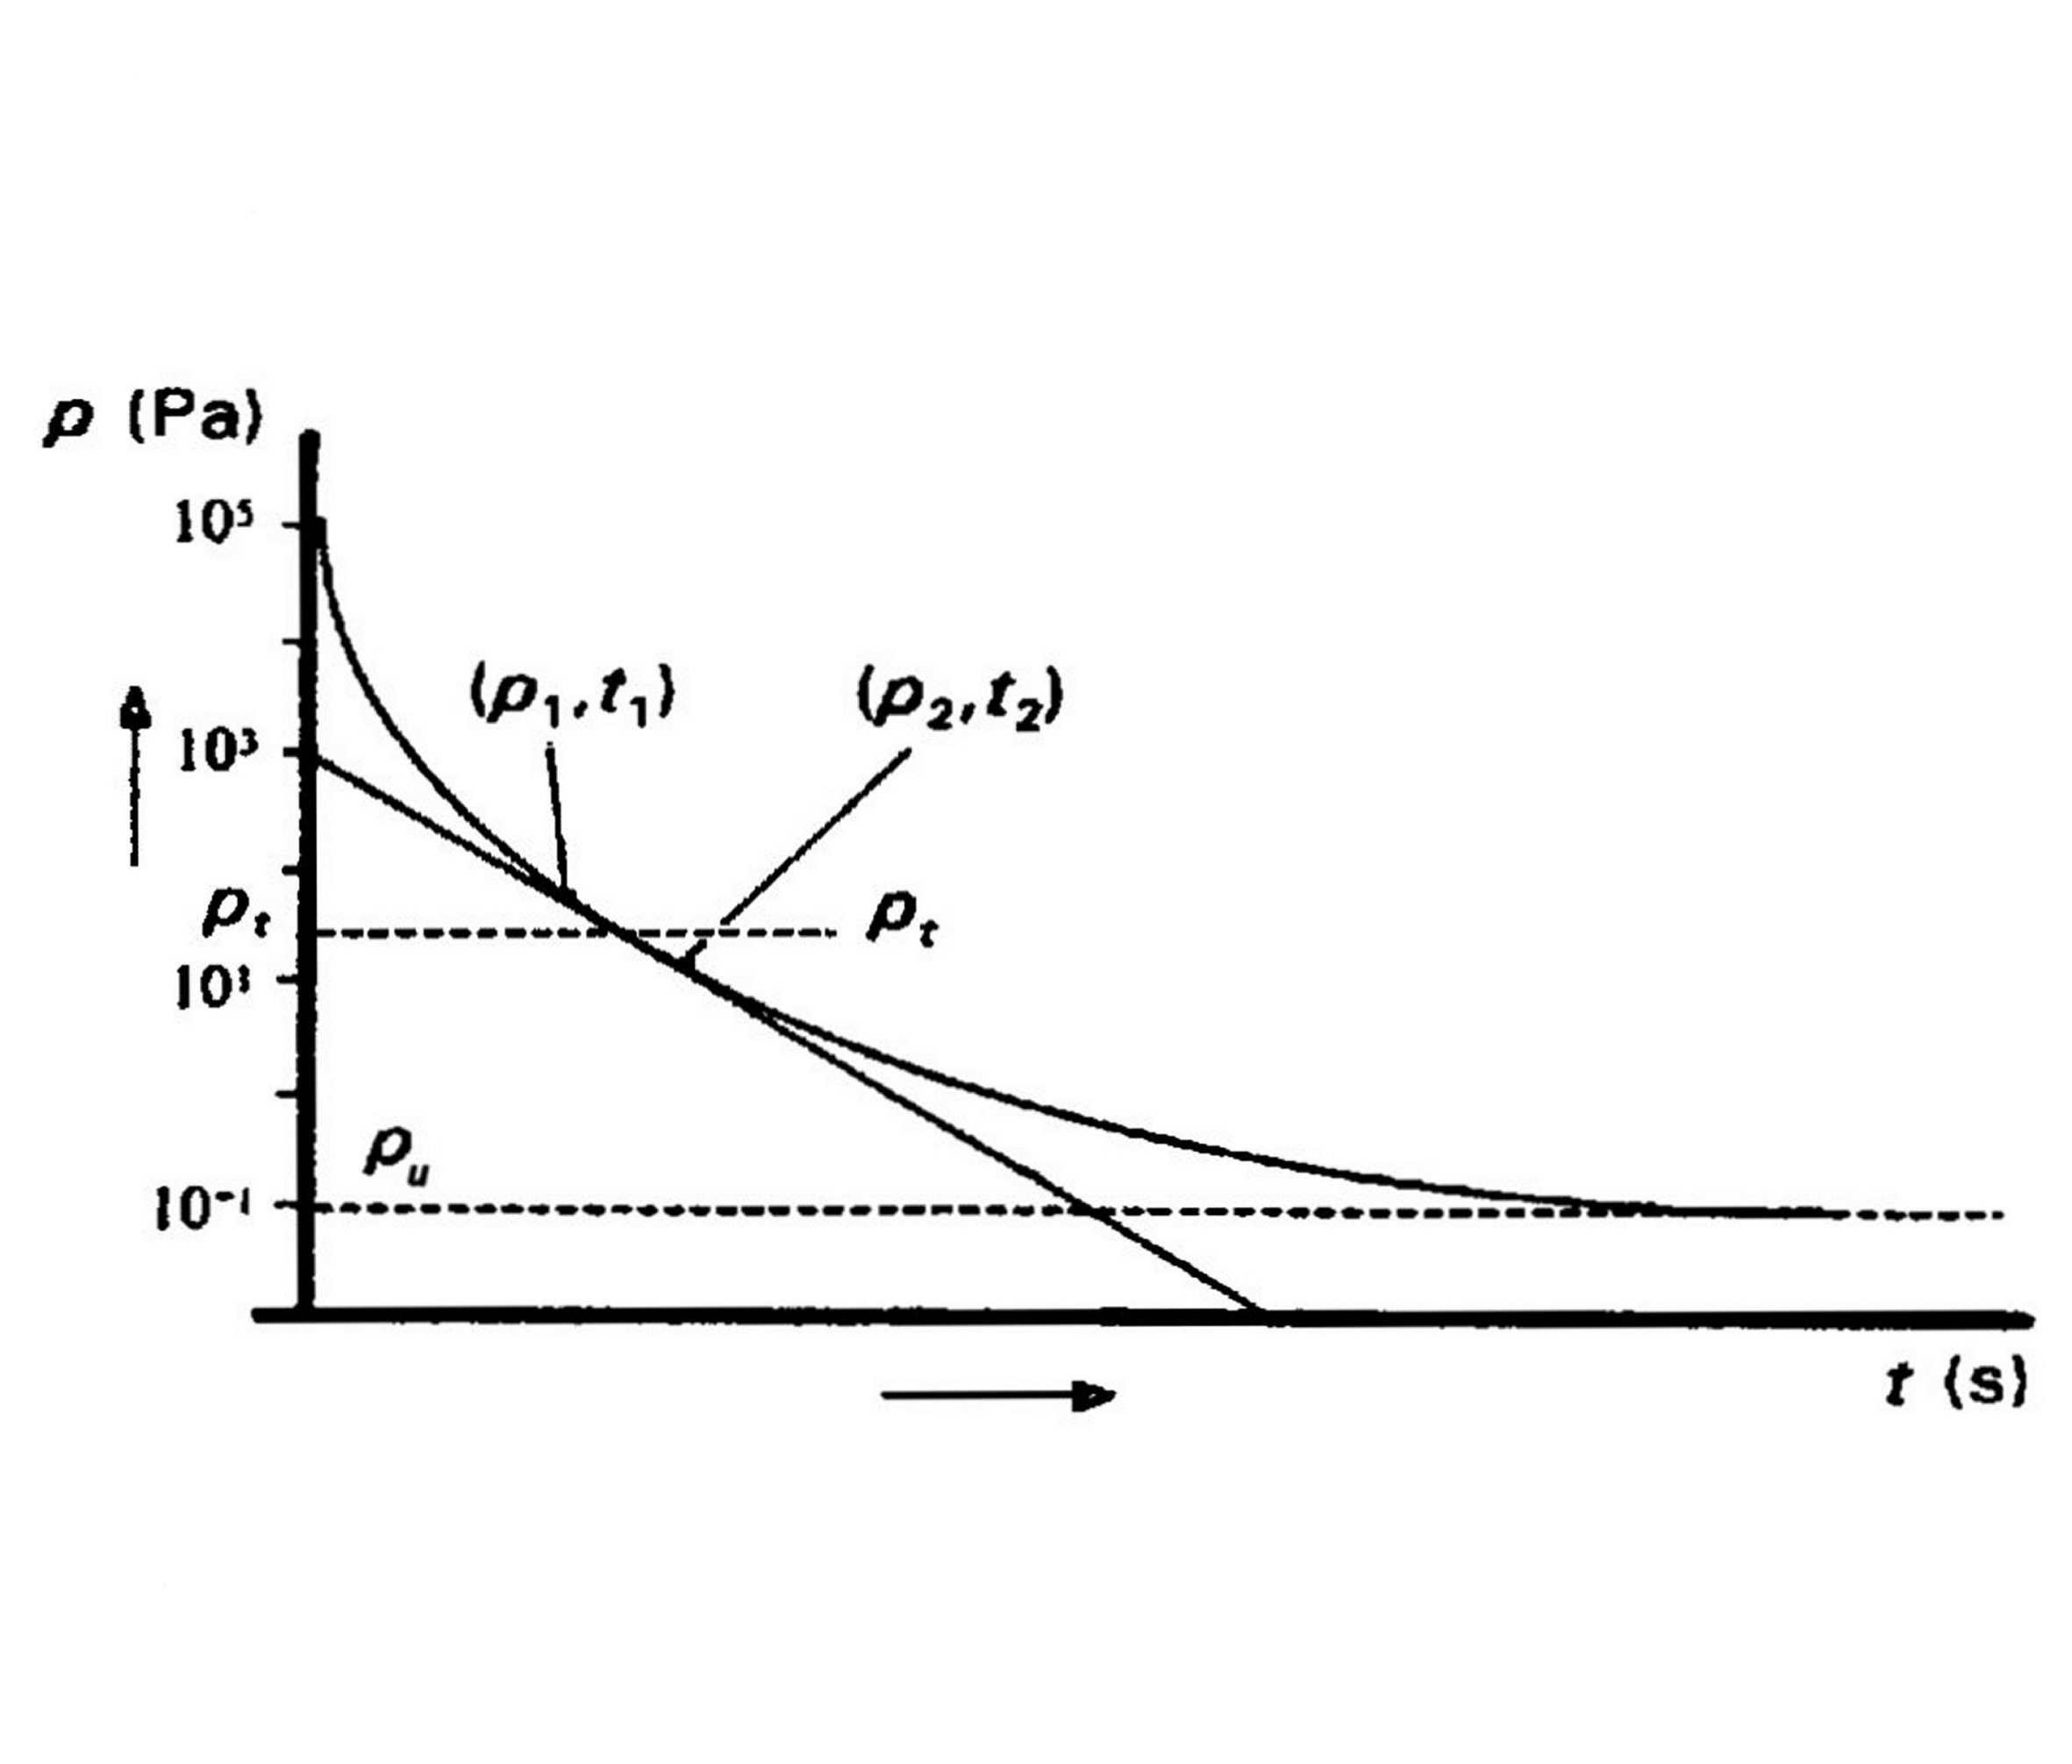 Measurements of pump properties - p(t) measurement to derive an S(p) curve